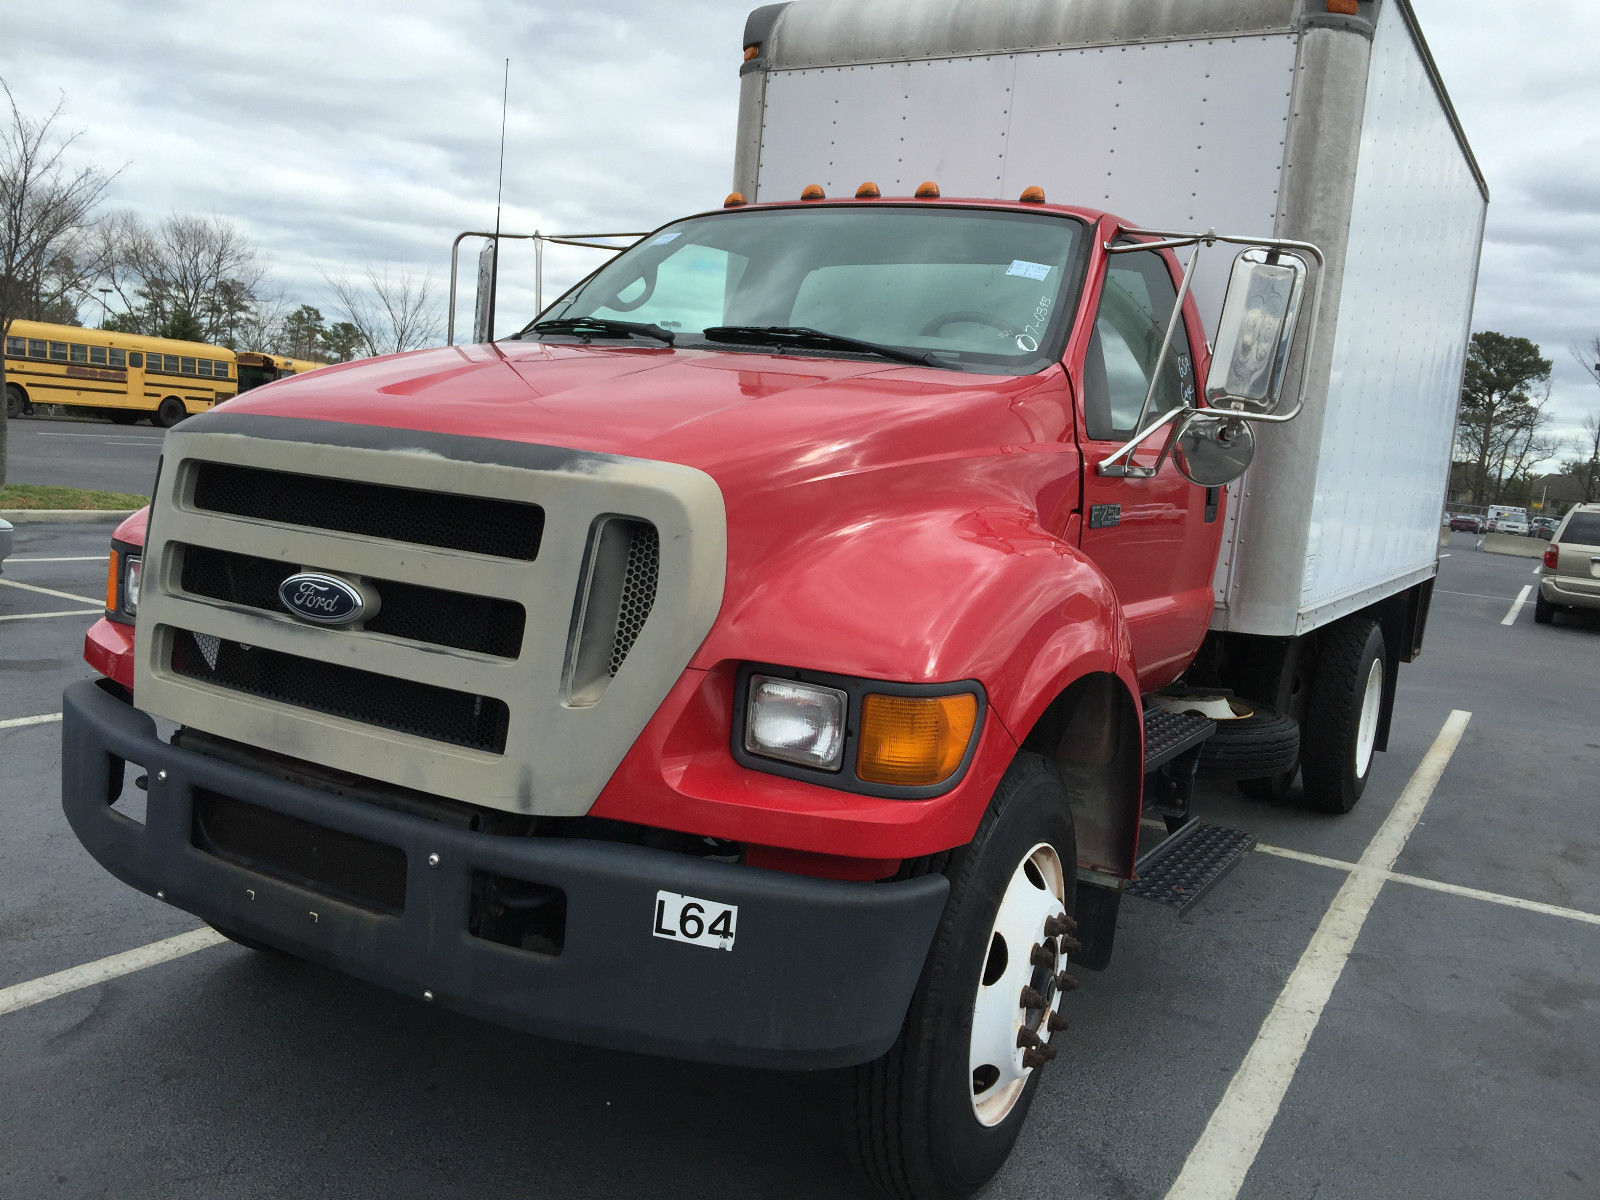 1993 ford f750 related keywords suggestions 1993 ford f750 2005 ford f 750 box truck for in norfolk virginia